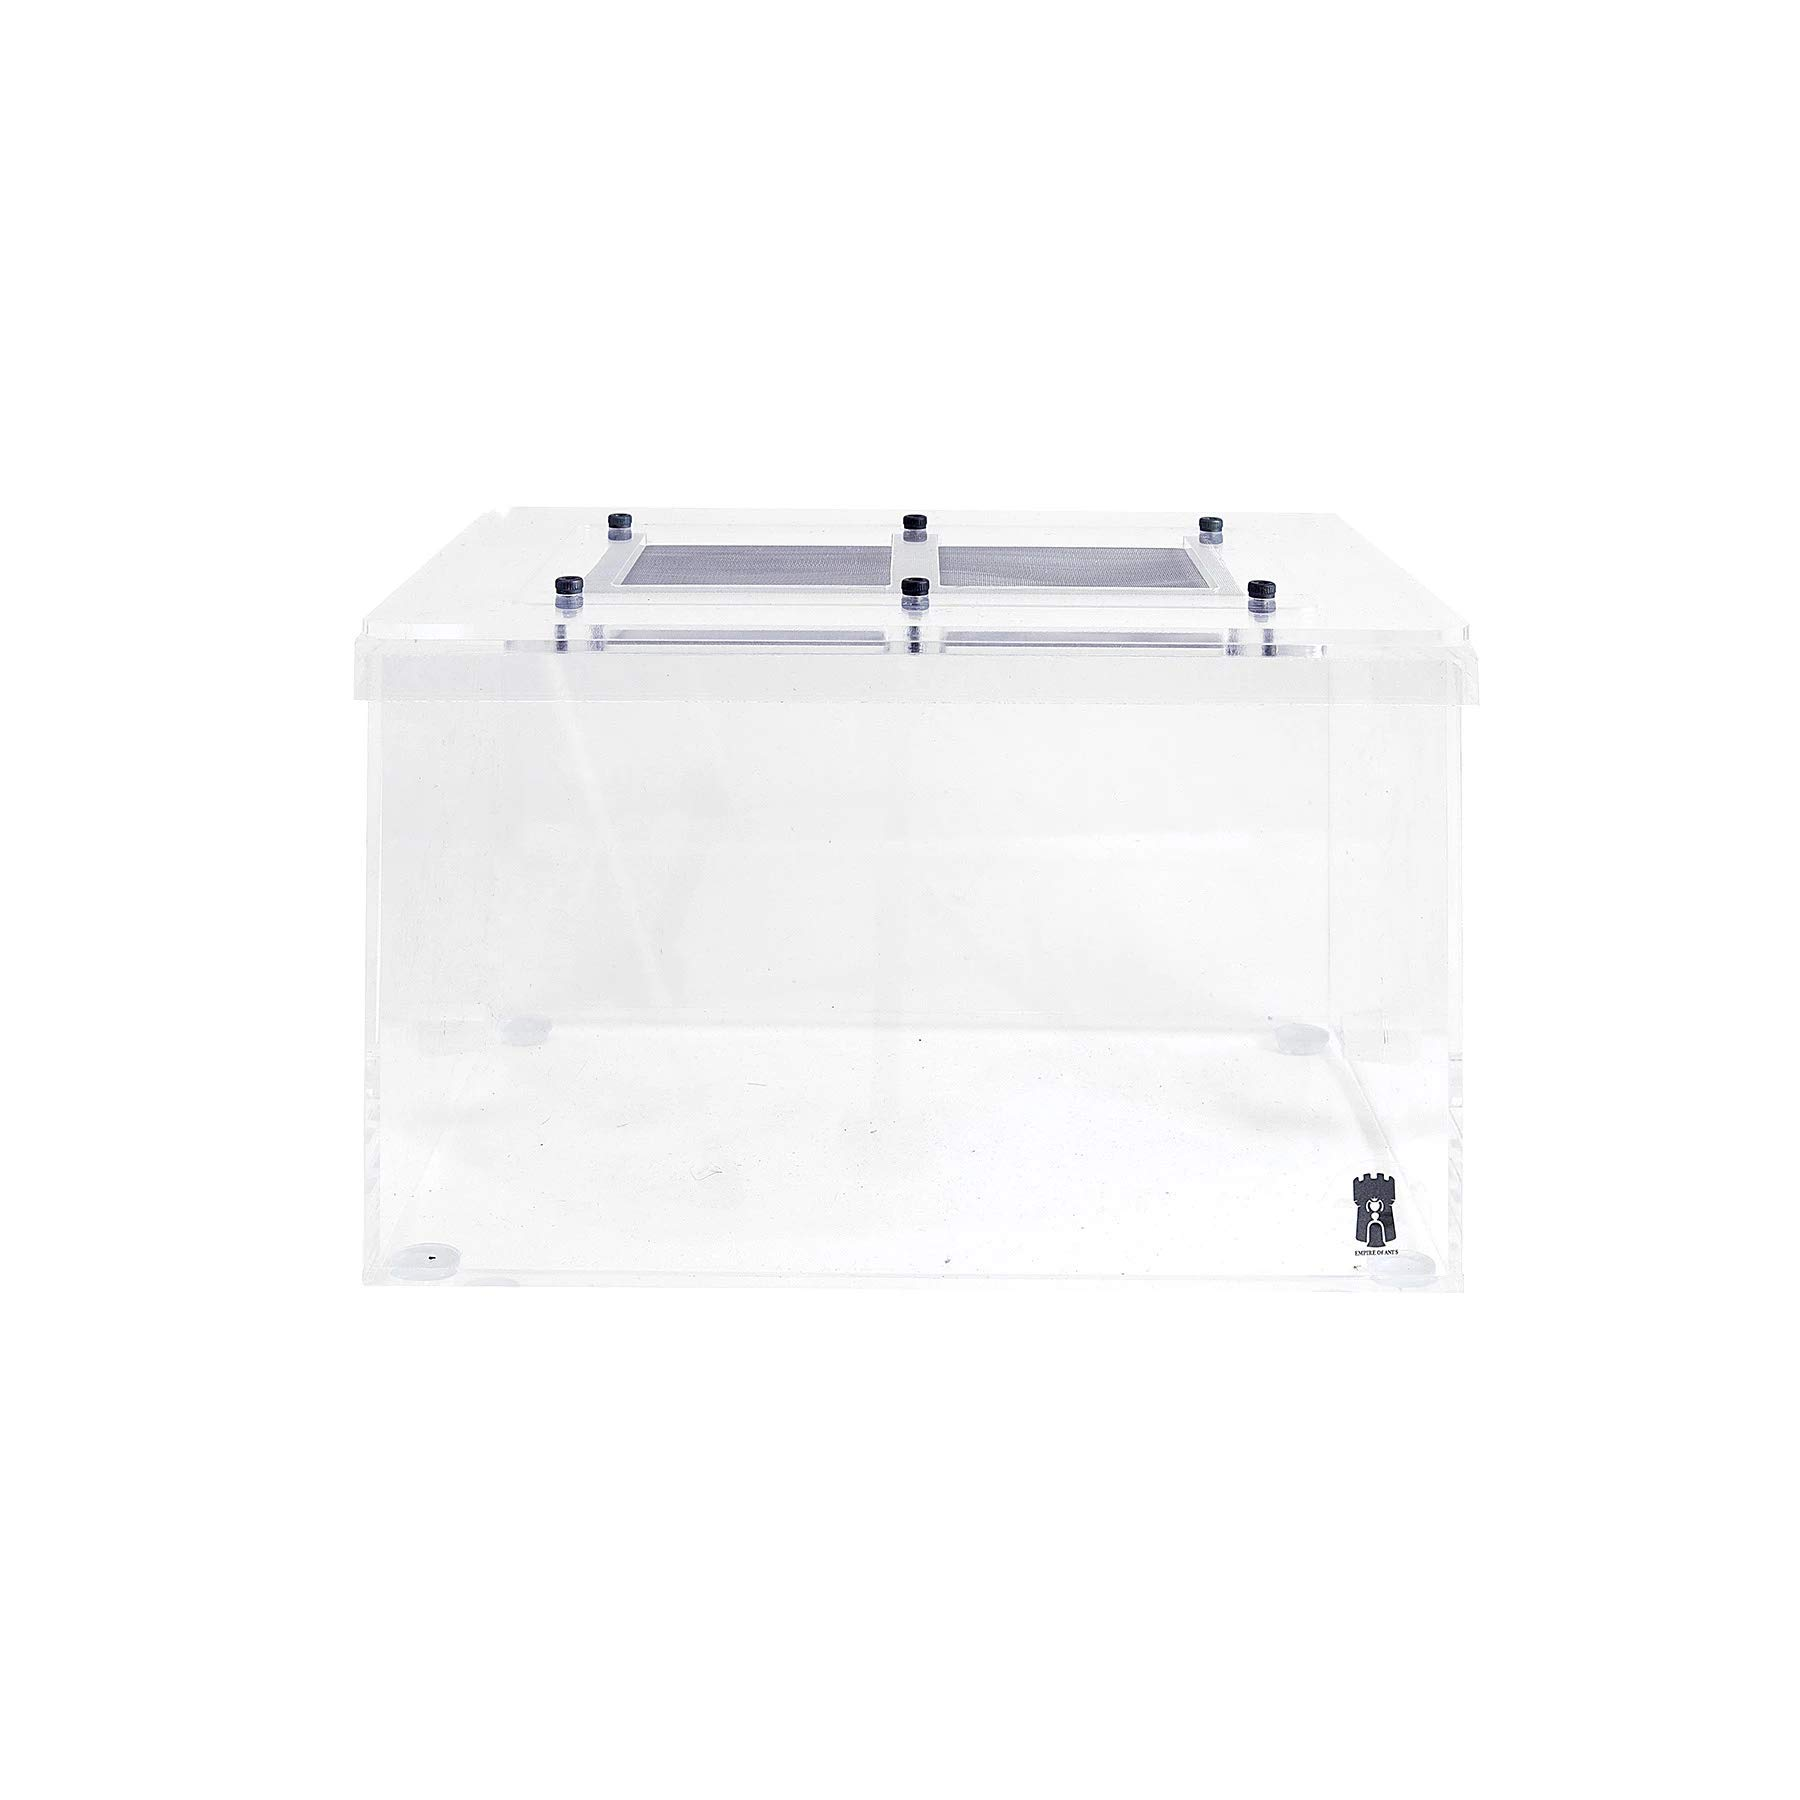 Empire of Ants Acrylic Outworld Arena Enclosure 200mm x 150mm x 120mm by Empire of Ants